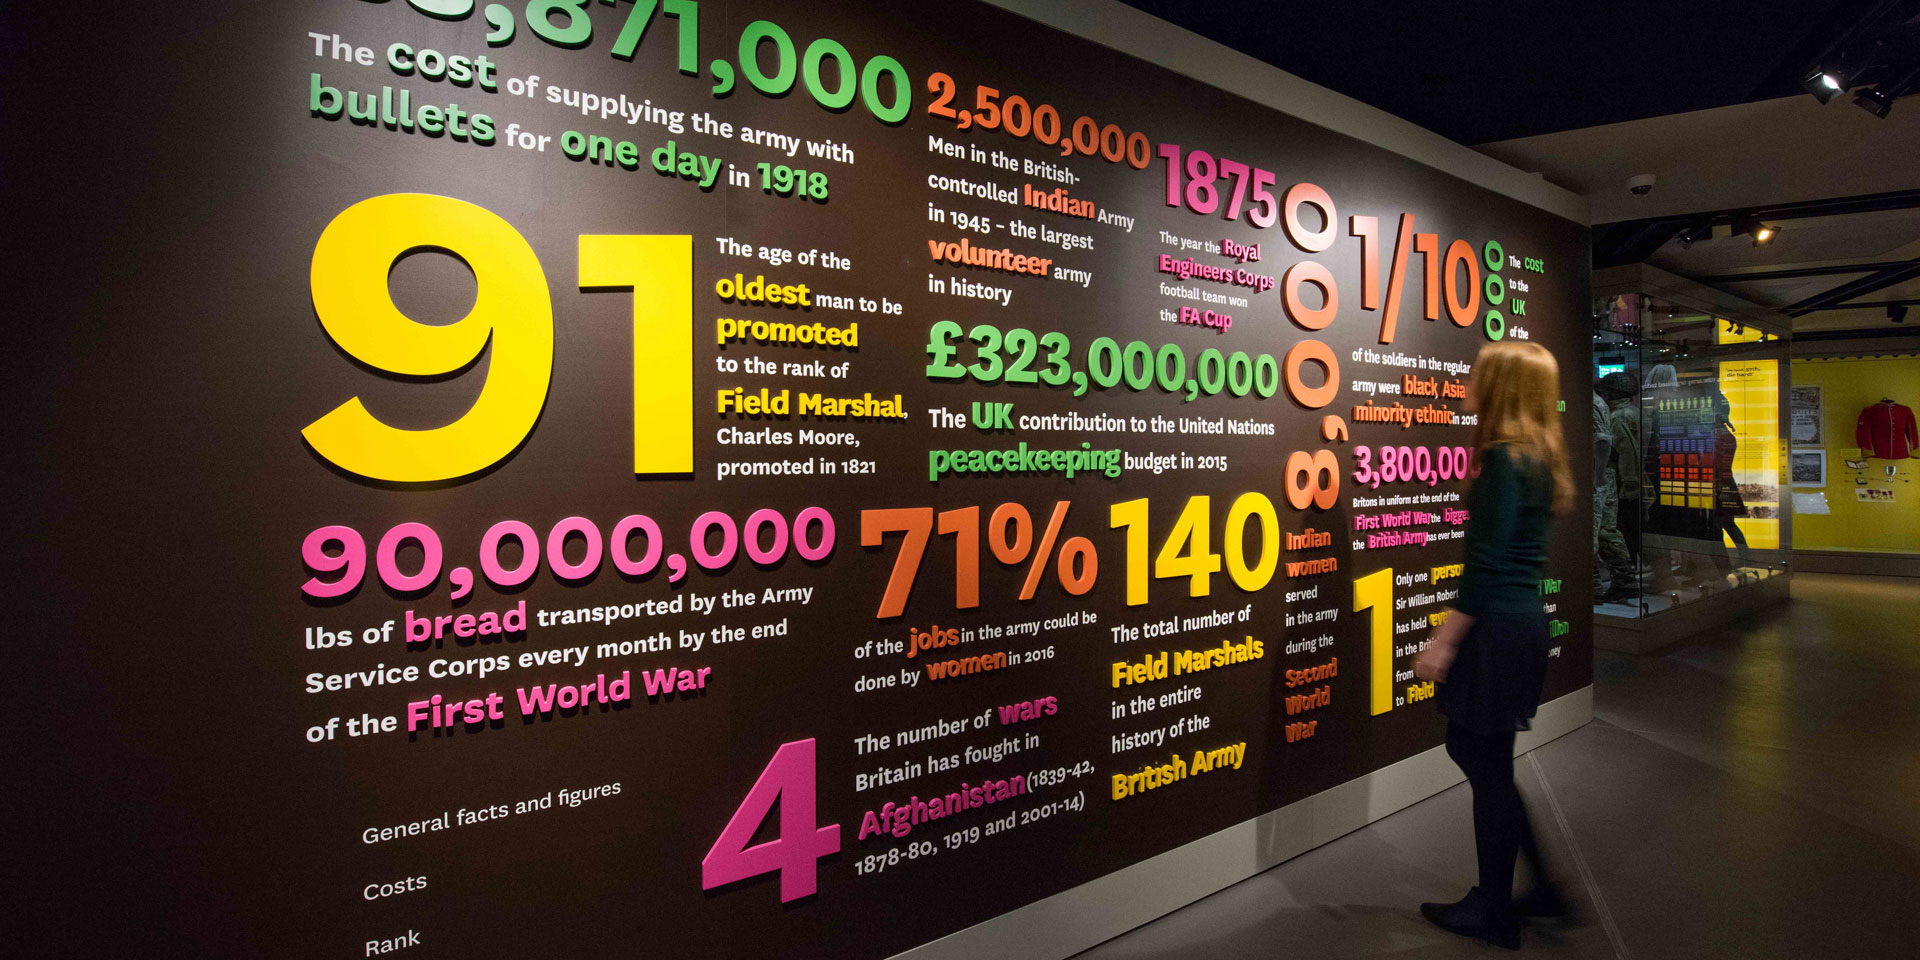 A wall in Army gallery displaying statistics